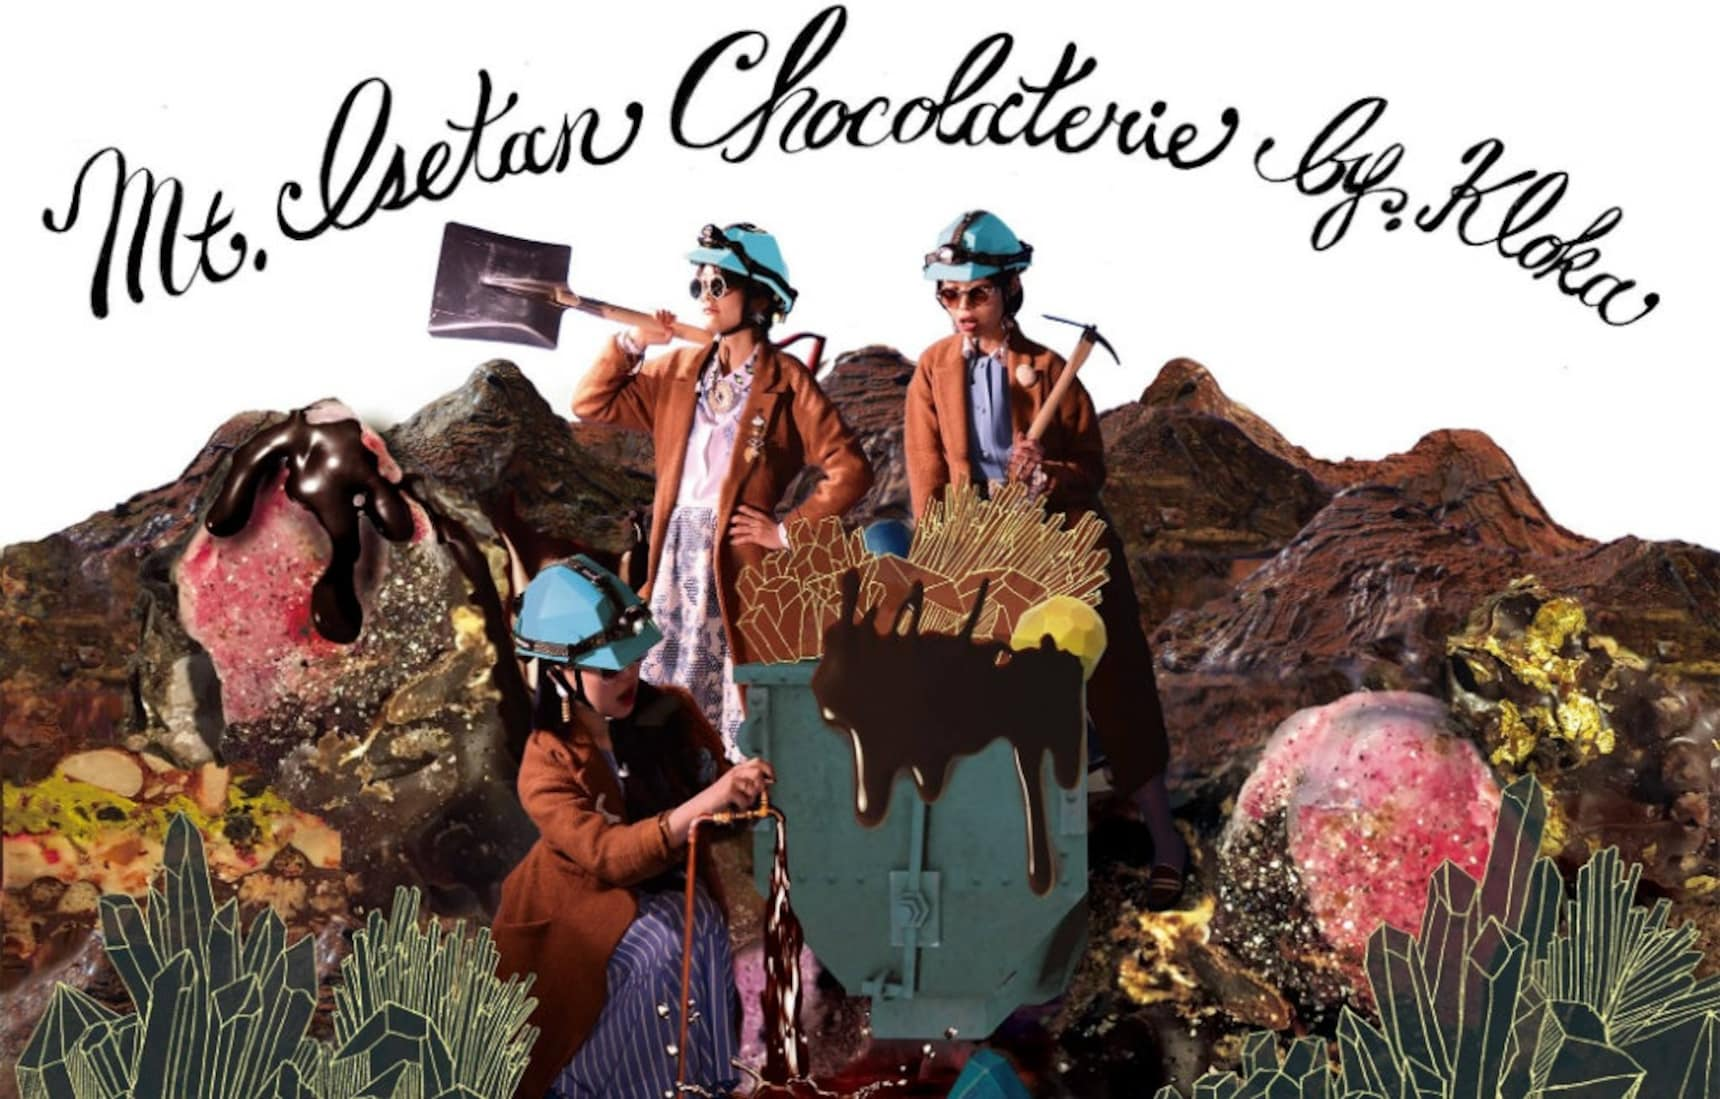 Take Your Date Chocolate Mining